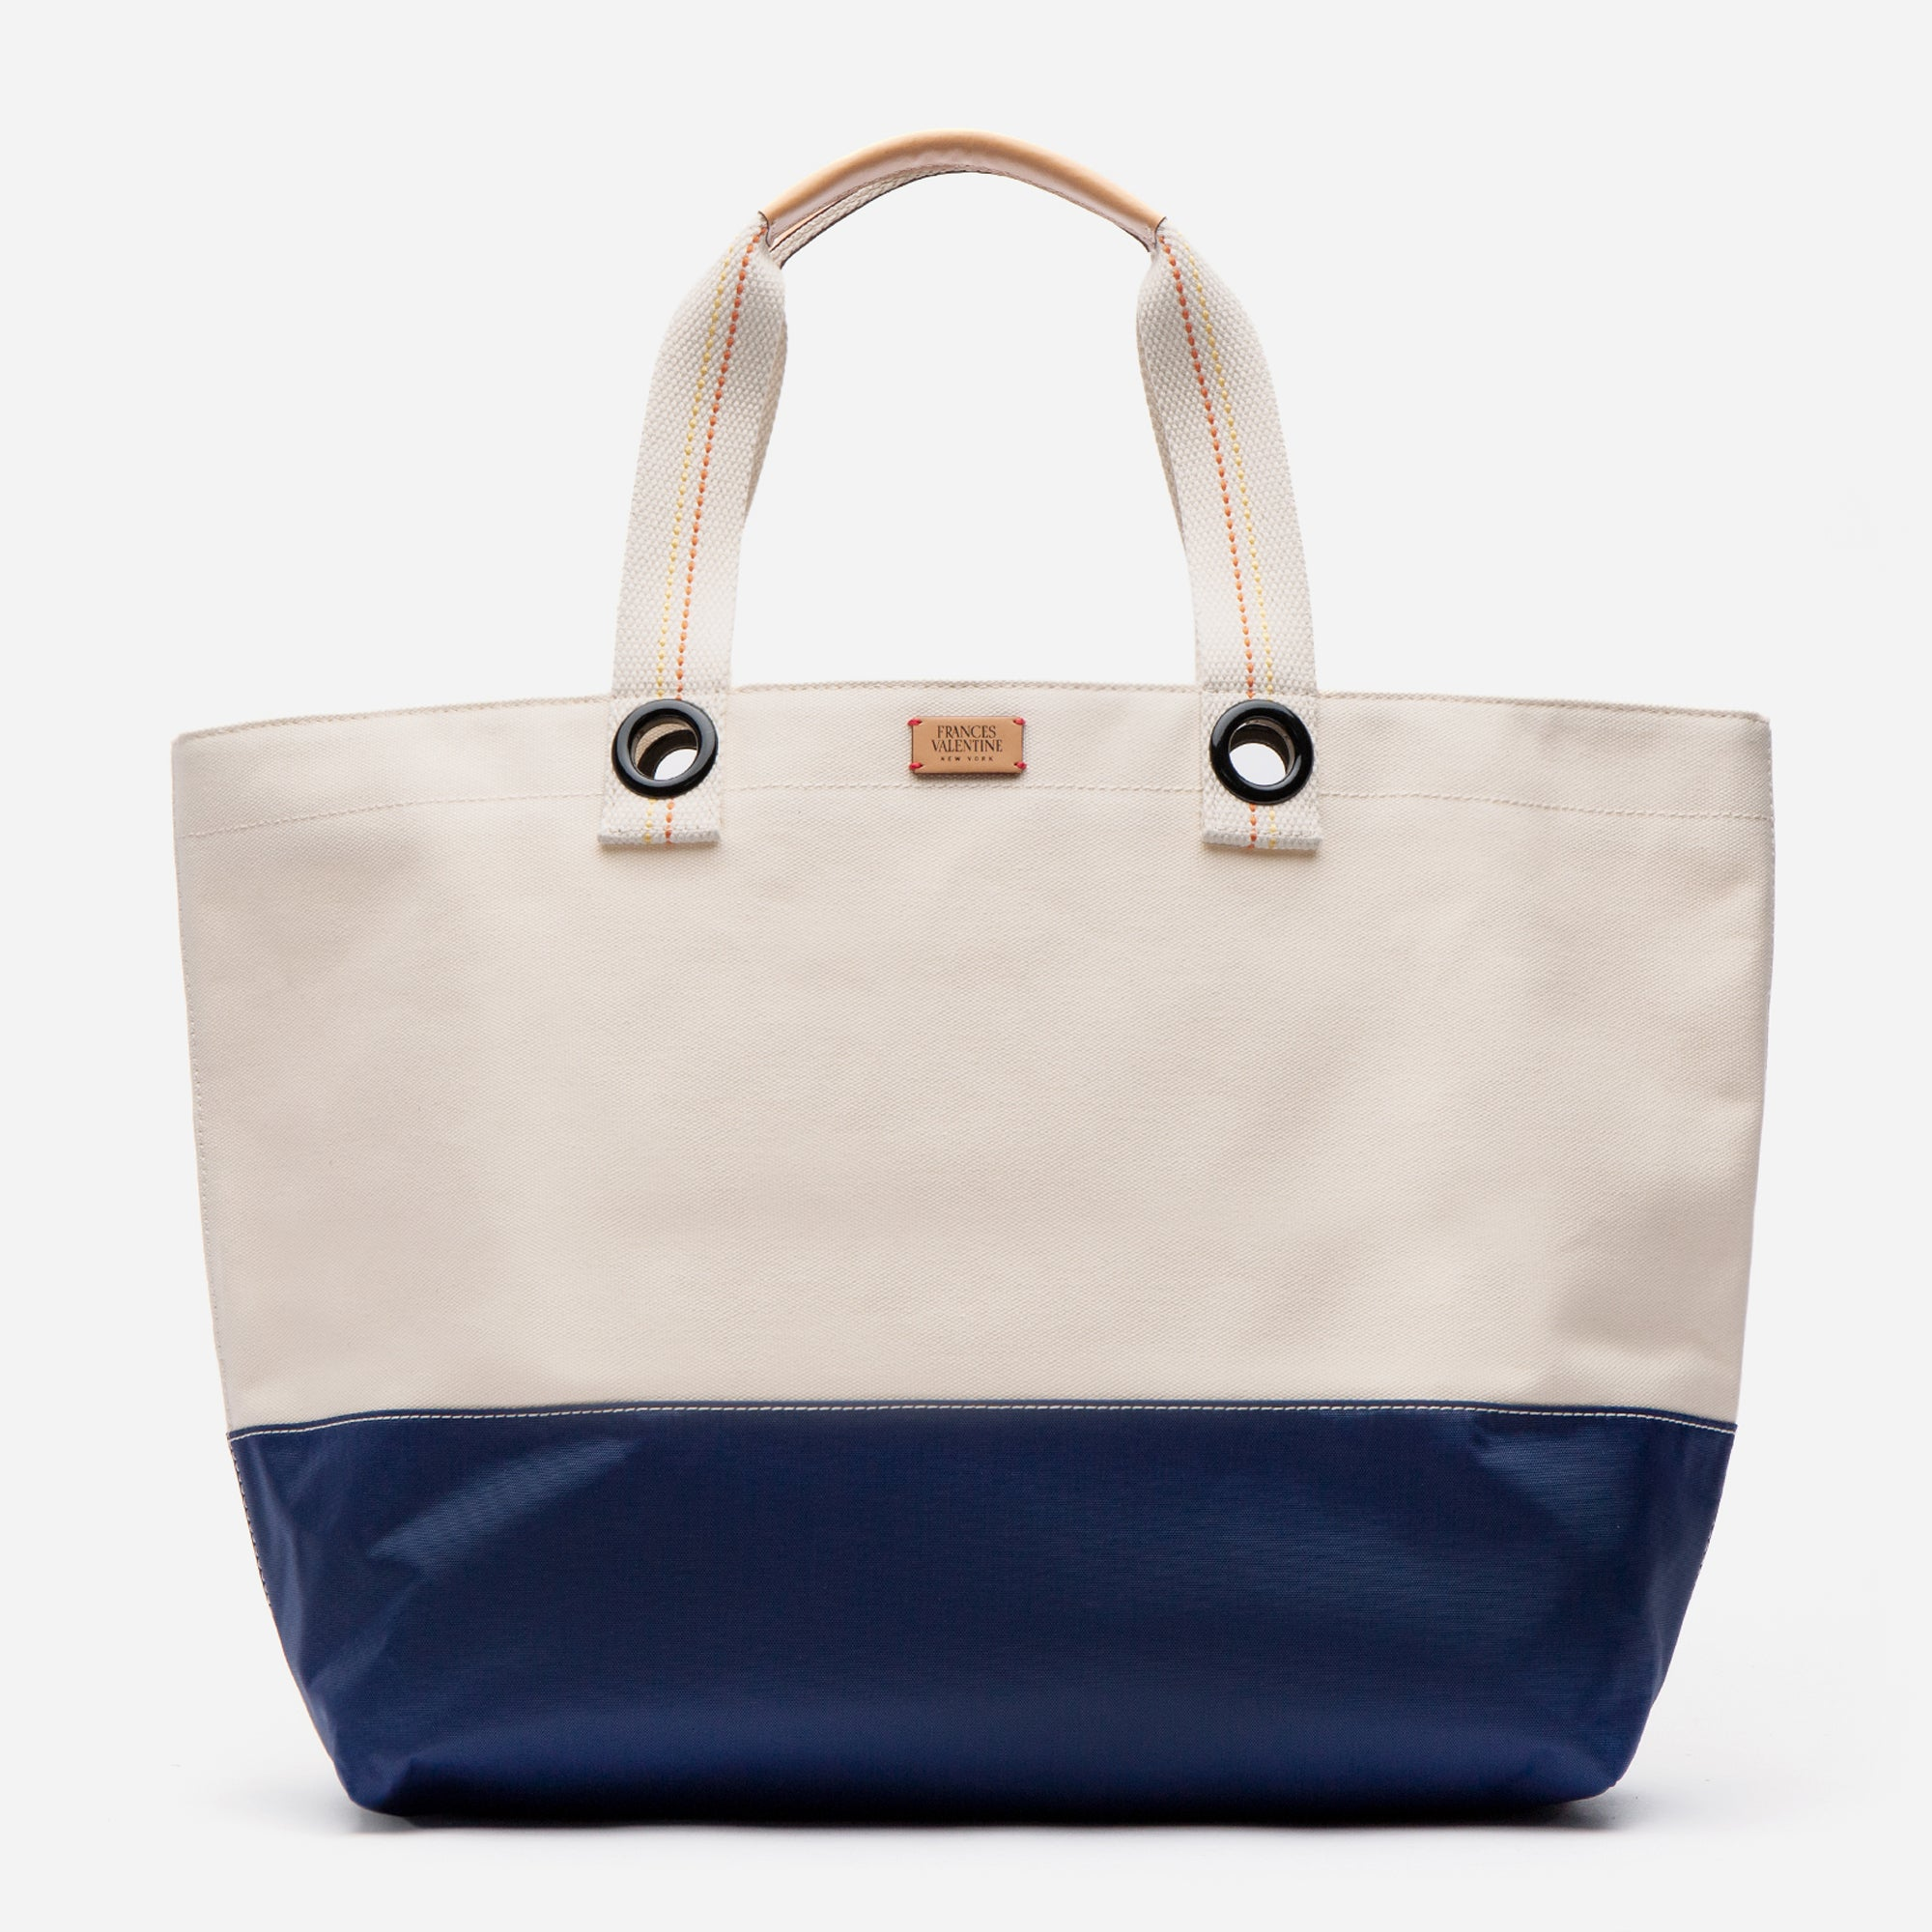 Colorblock Canvas Weekend Tote Natural Navy - Frances Valentine